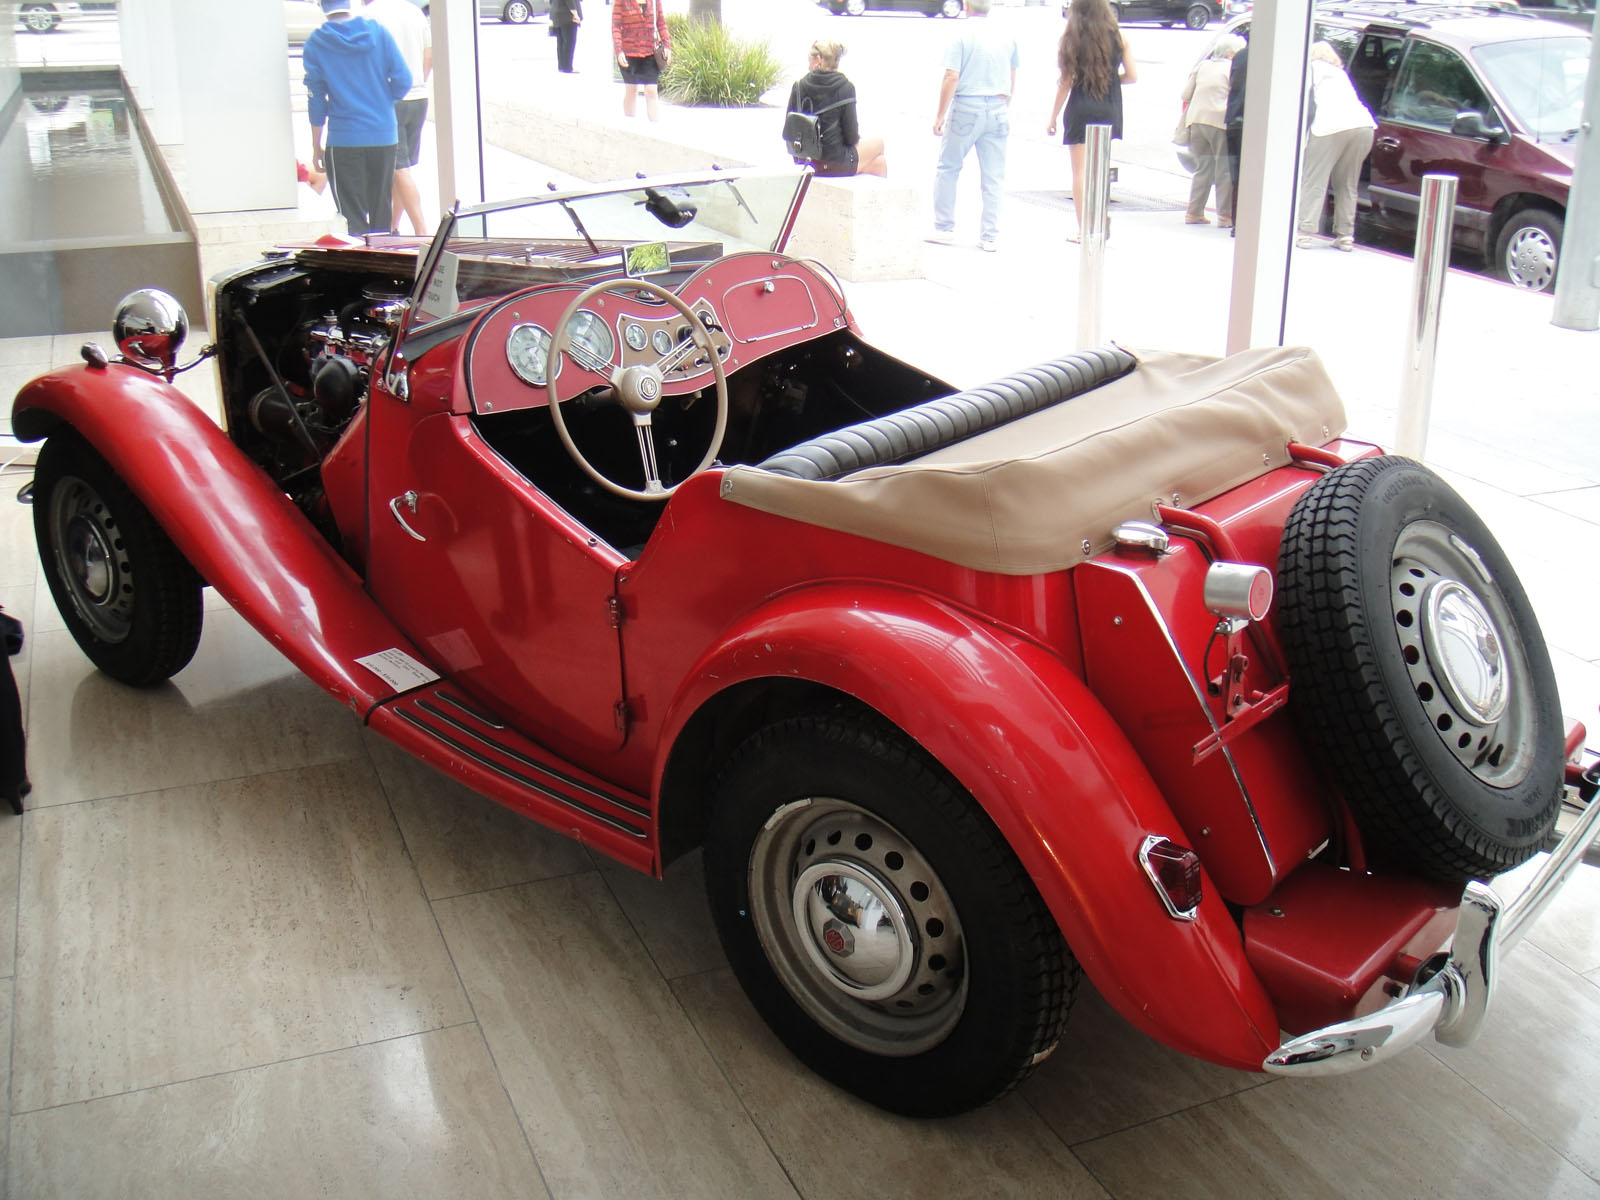 Car Search Usa >> File:Debbie Reynolds Auction - 012 - 1952 red MG TD used ...